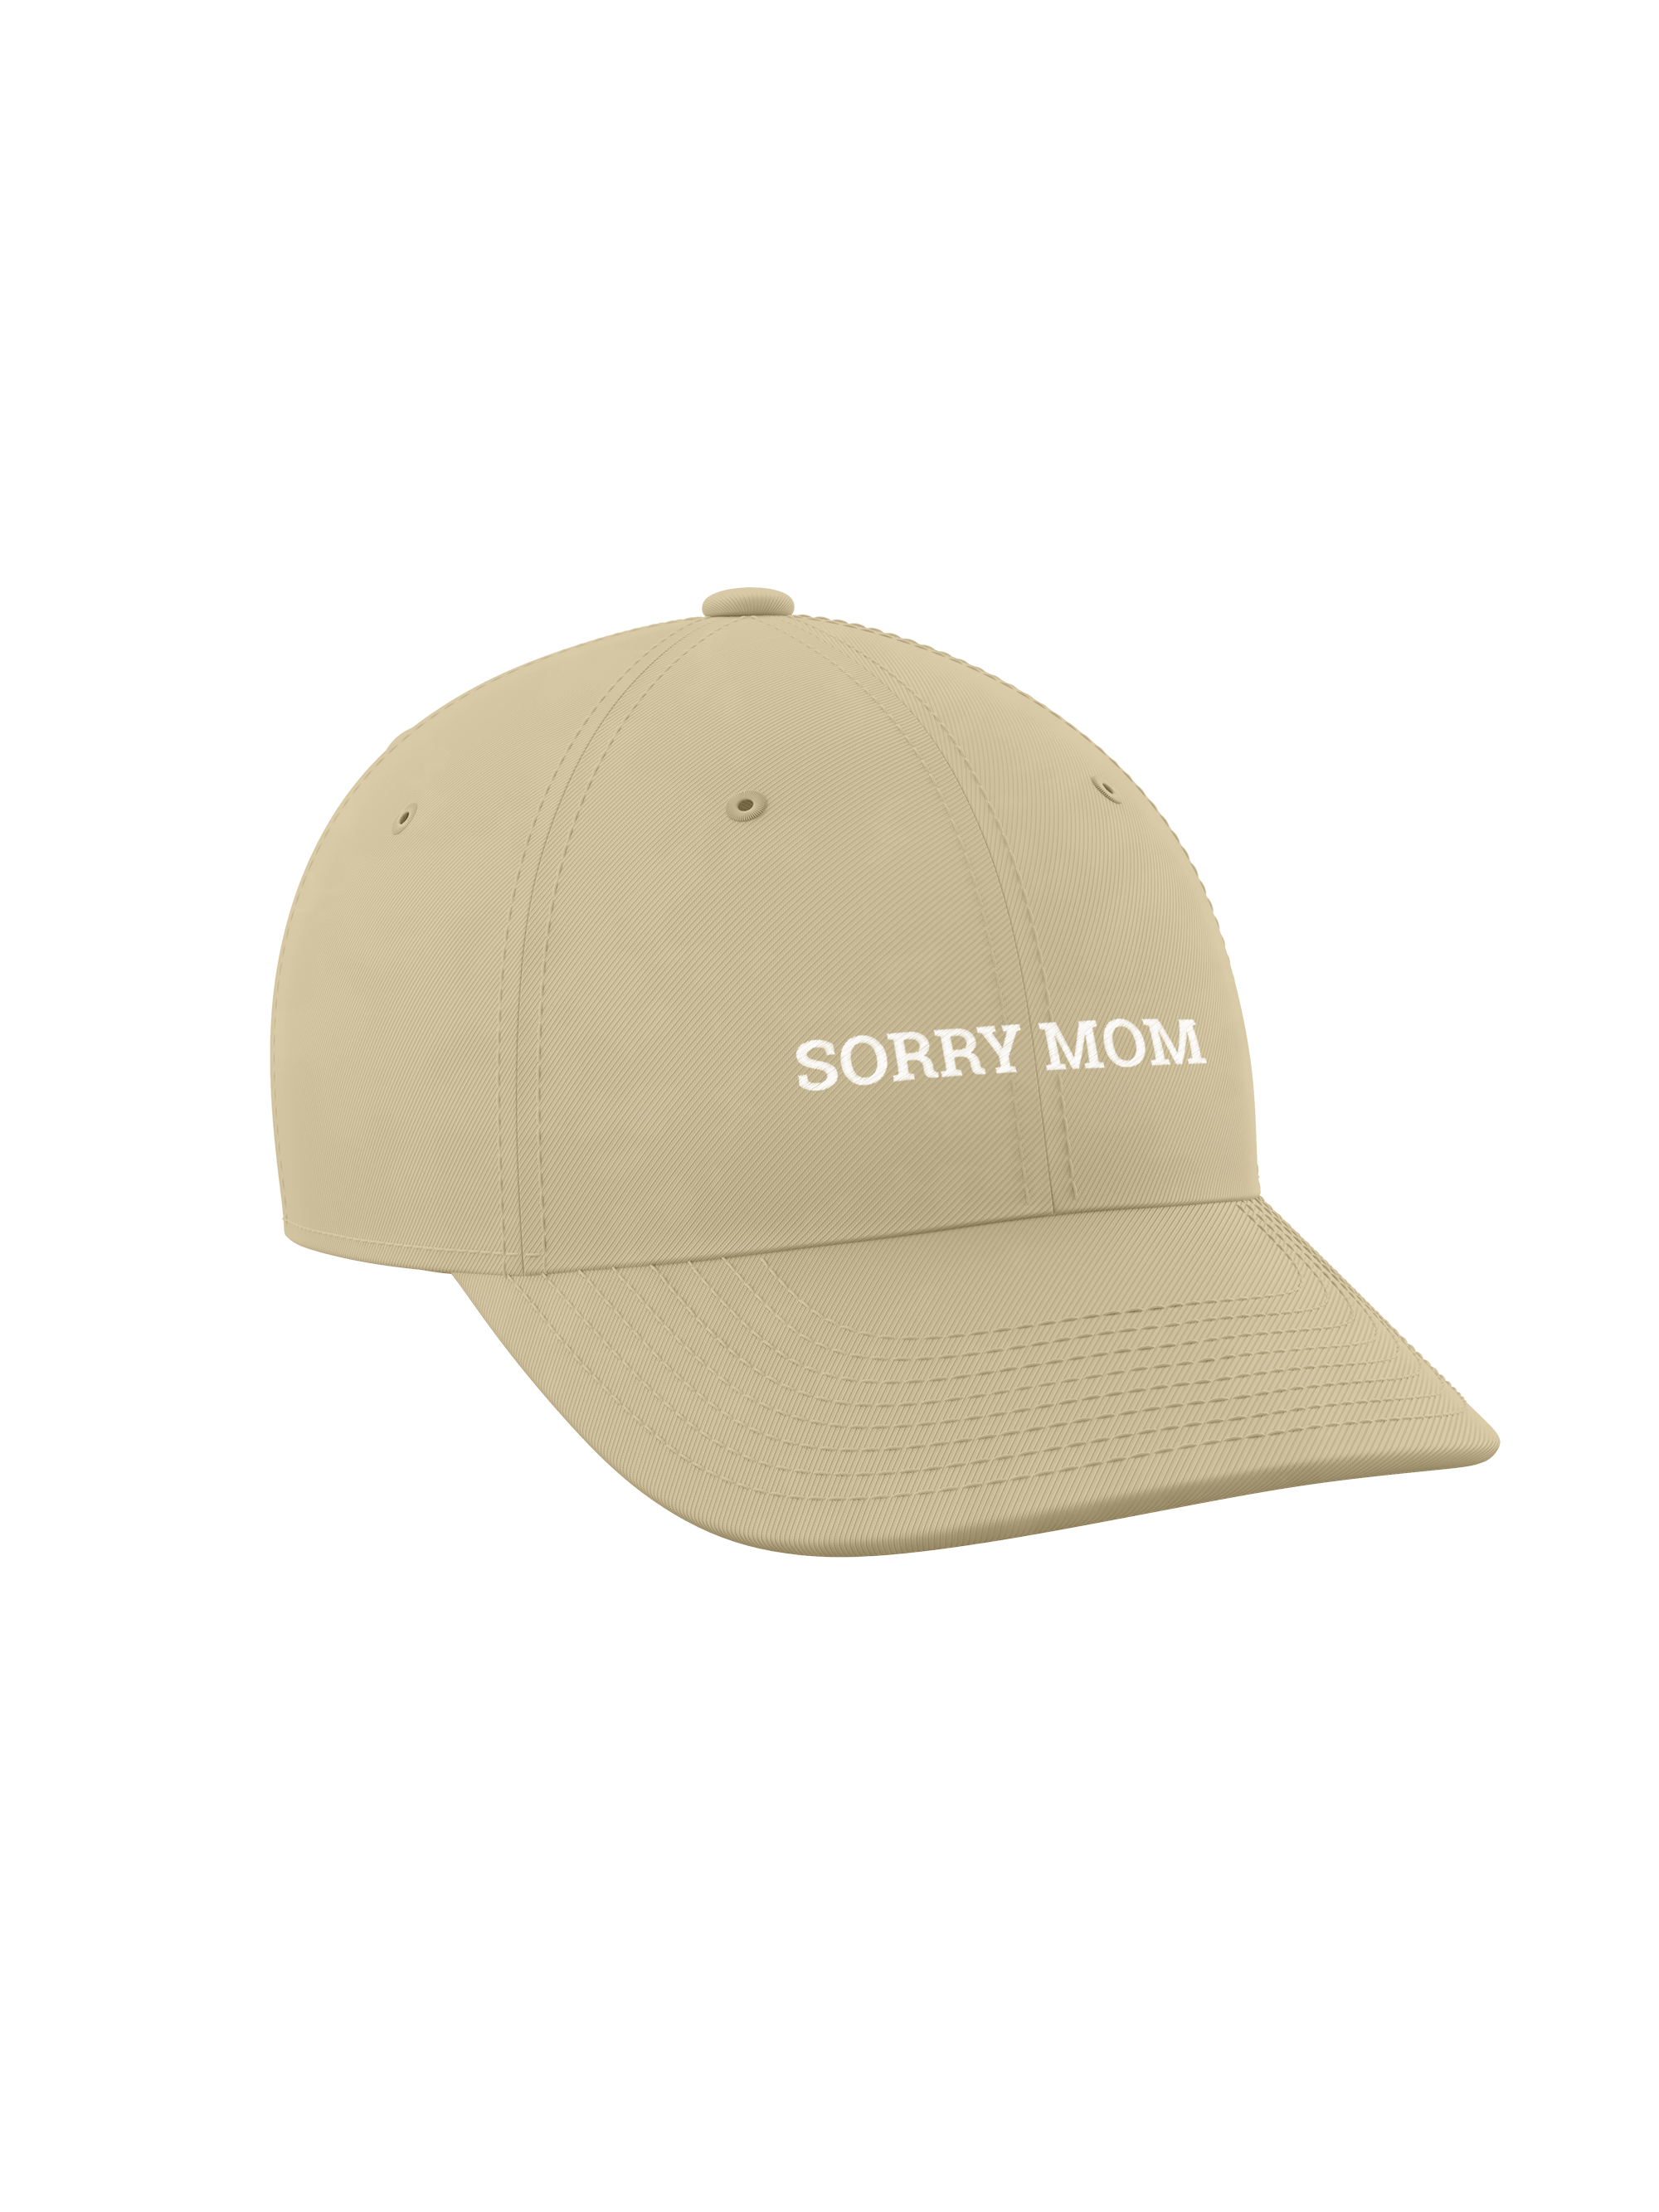 sorry-mom-khaki_noshadow.png